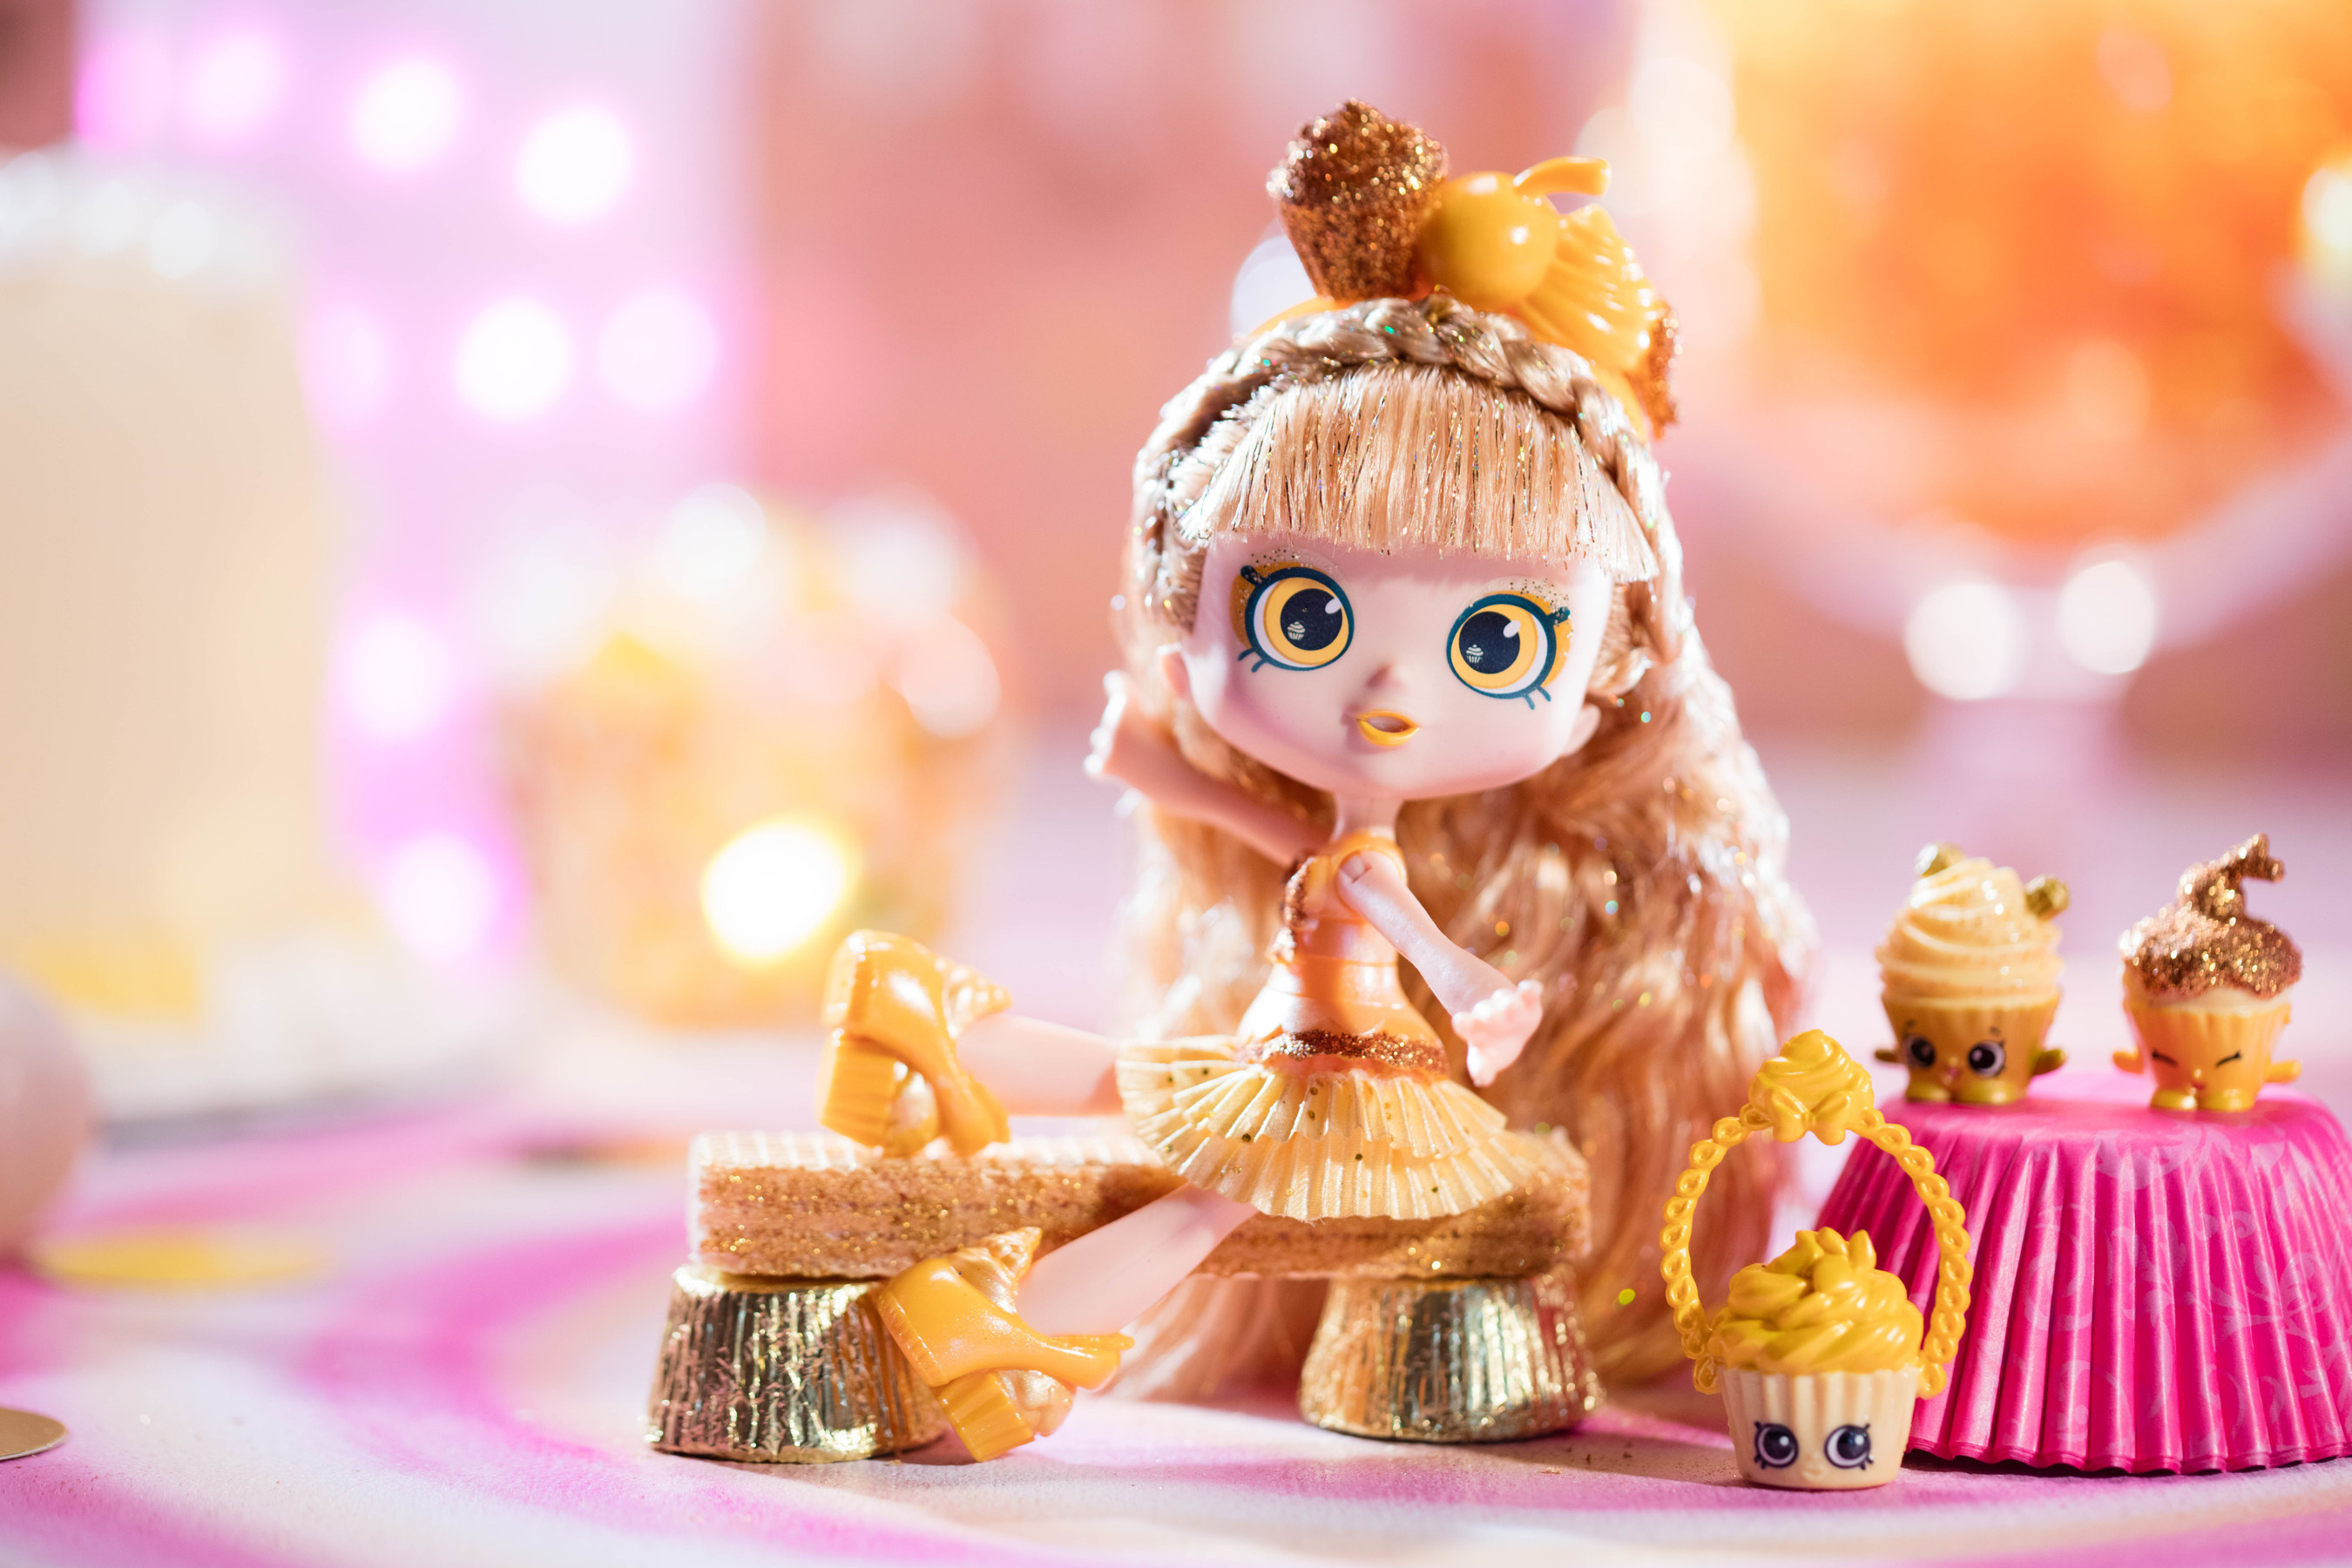 Moose Toys, creators of the Shopkins collectible craze, makes its first-ever appearance at San Diego Comic-Con with the debut of Jessicake Limited Edition Golden Cupcake, the most rare doll to join the popular Shoppies line.